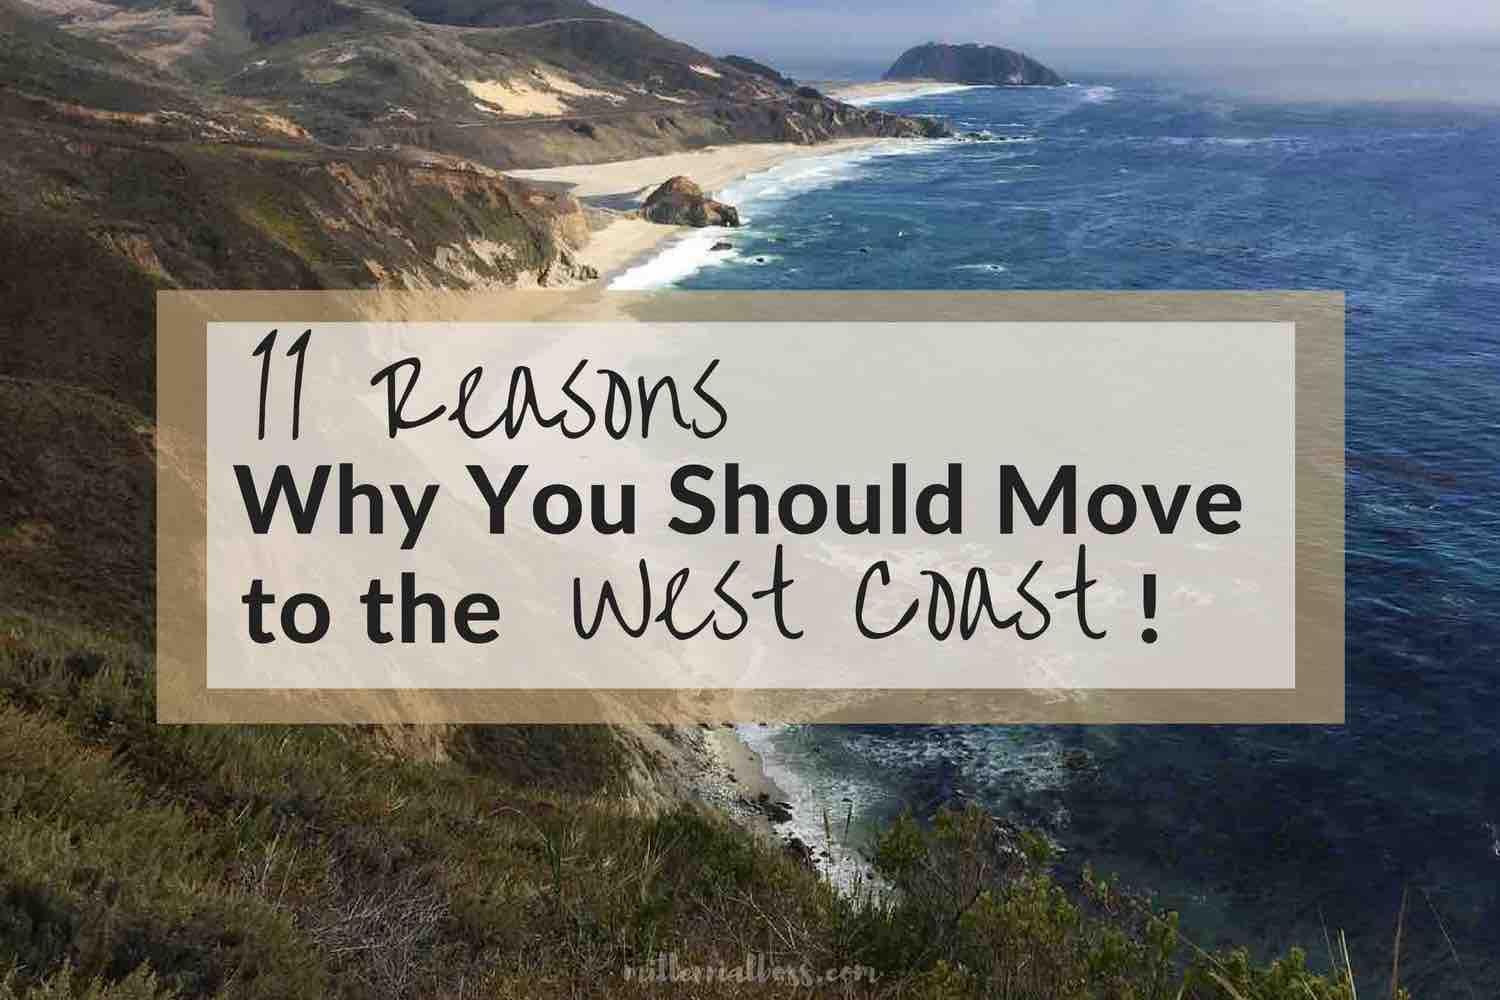 11 reasons why moving west changes you for the better